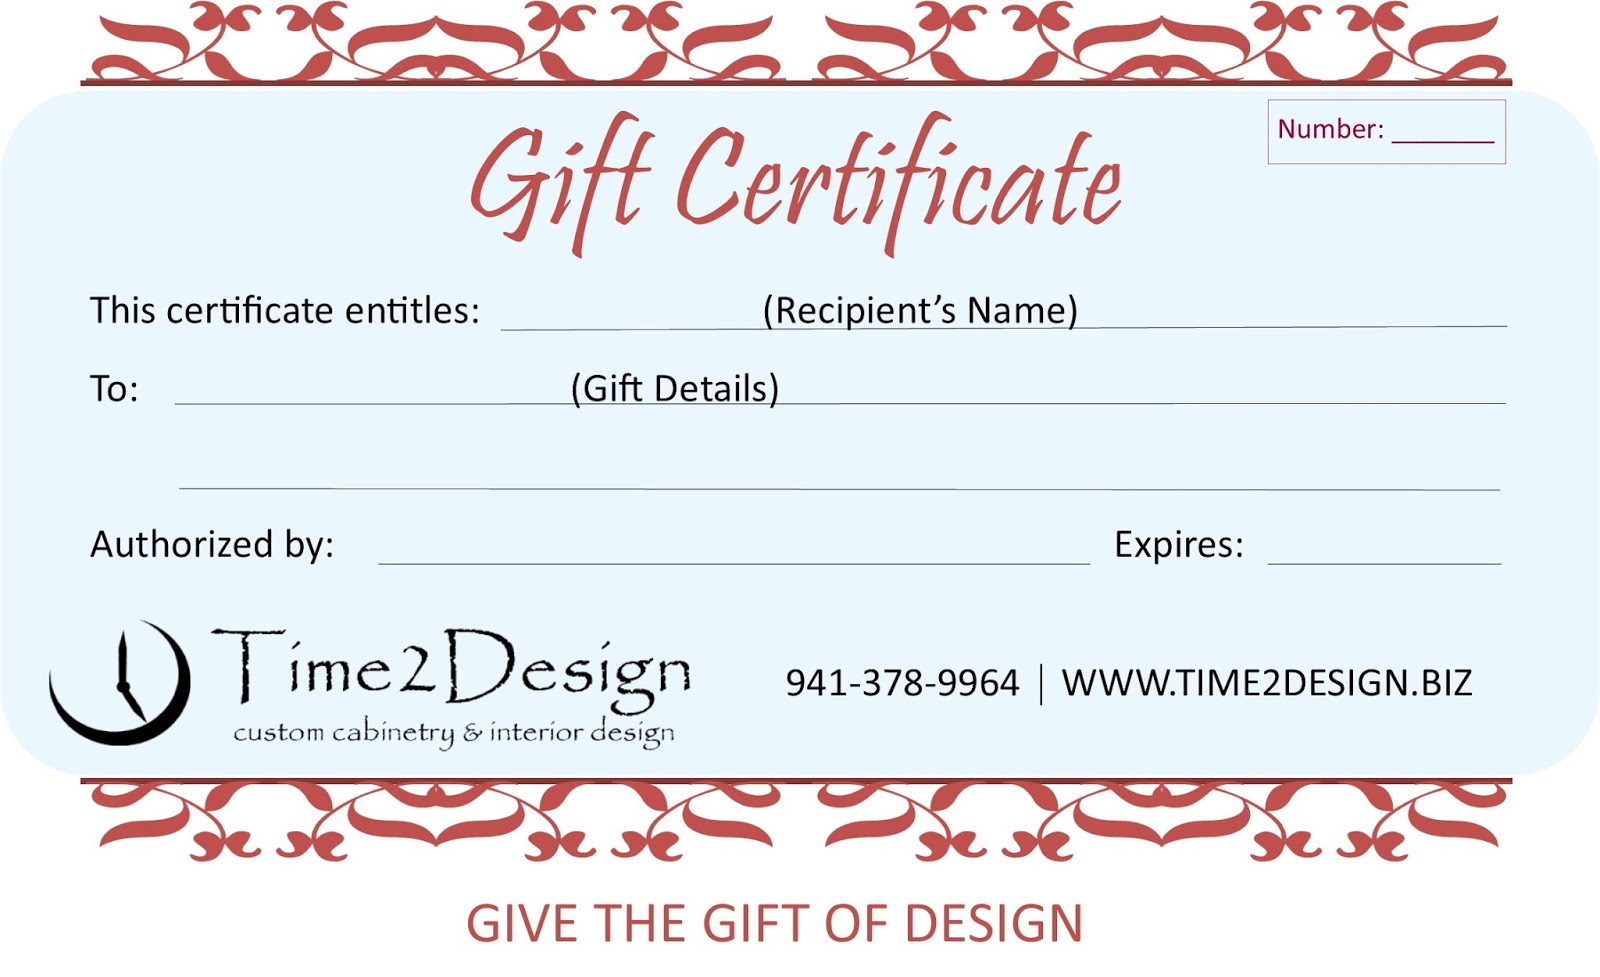 Time2Design Custom Cabinetry And Interior Design Kitchen BathCertificate Bath Courses